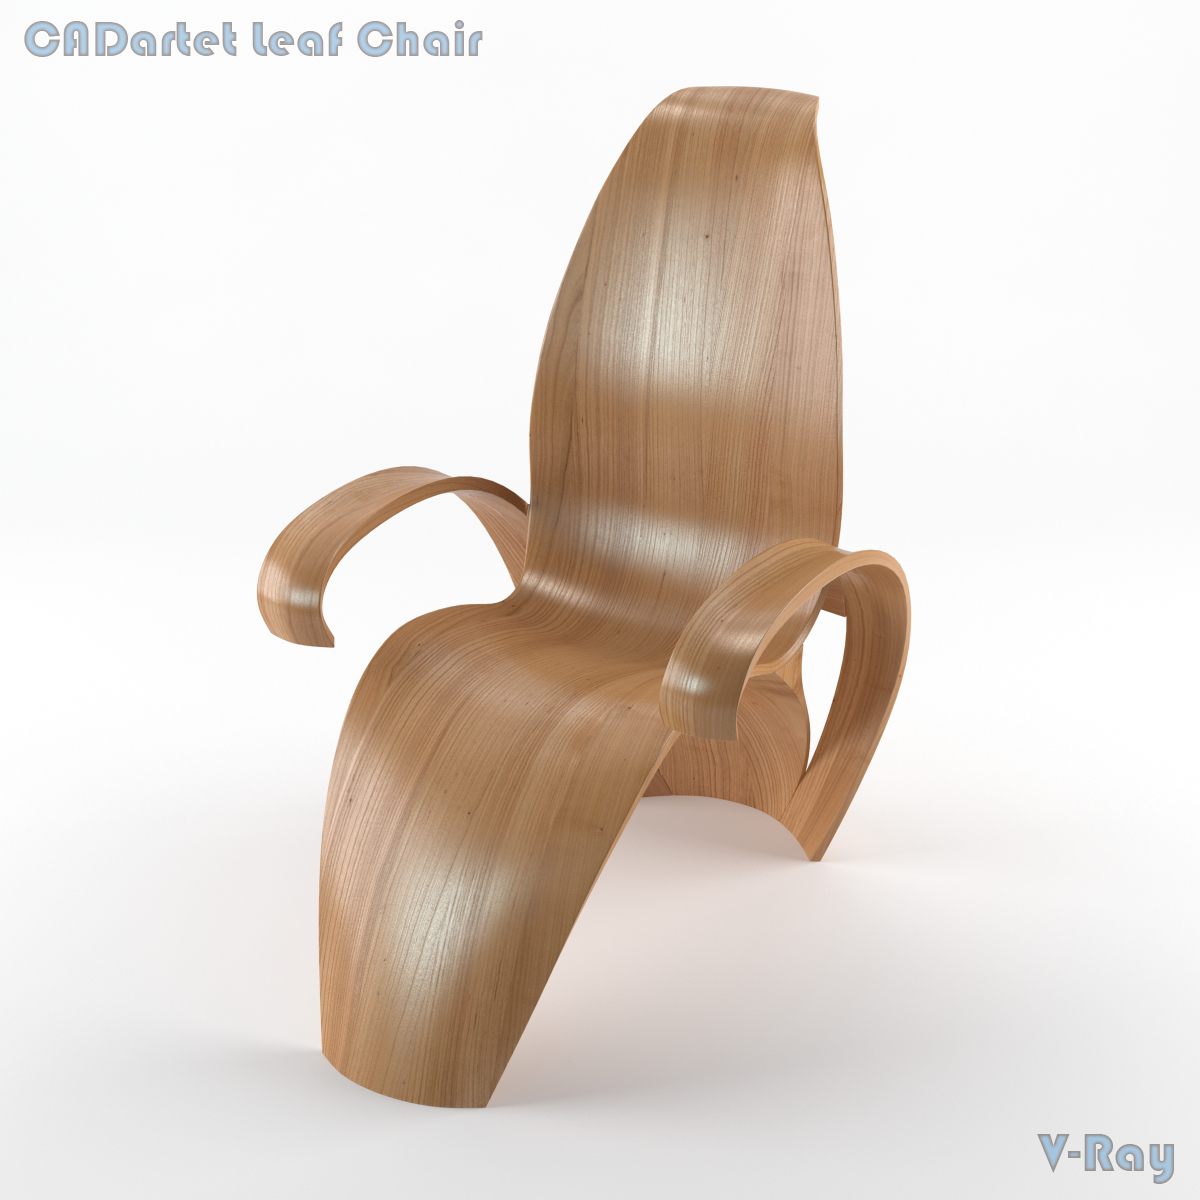 cadartet artet design leaf chair cadeira folha